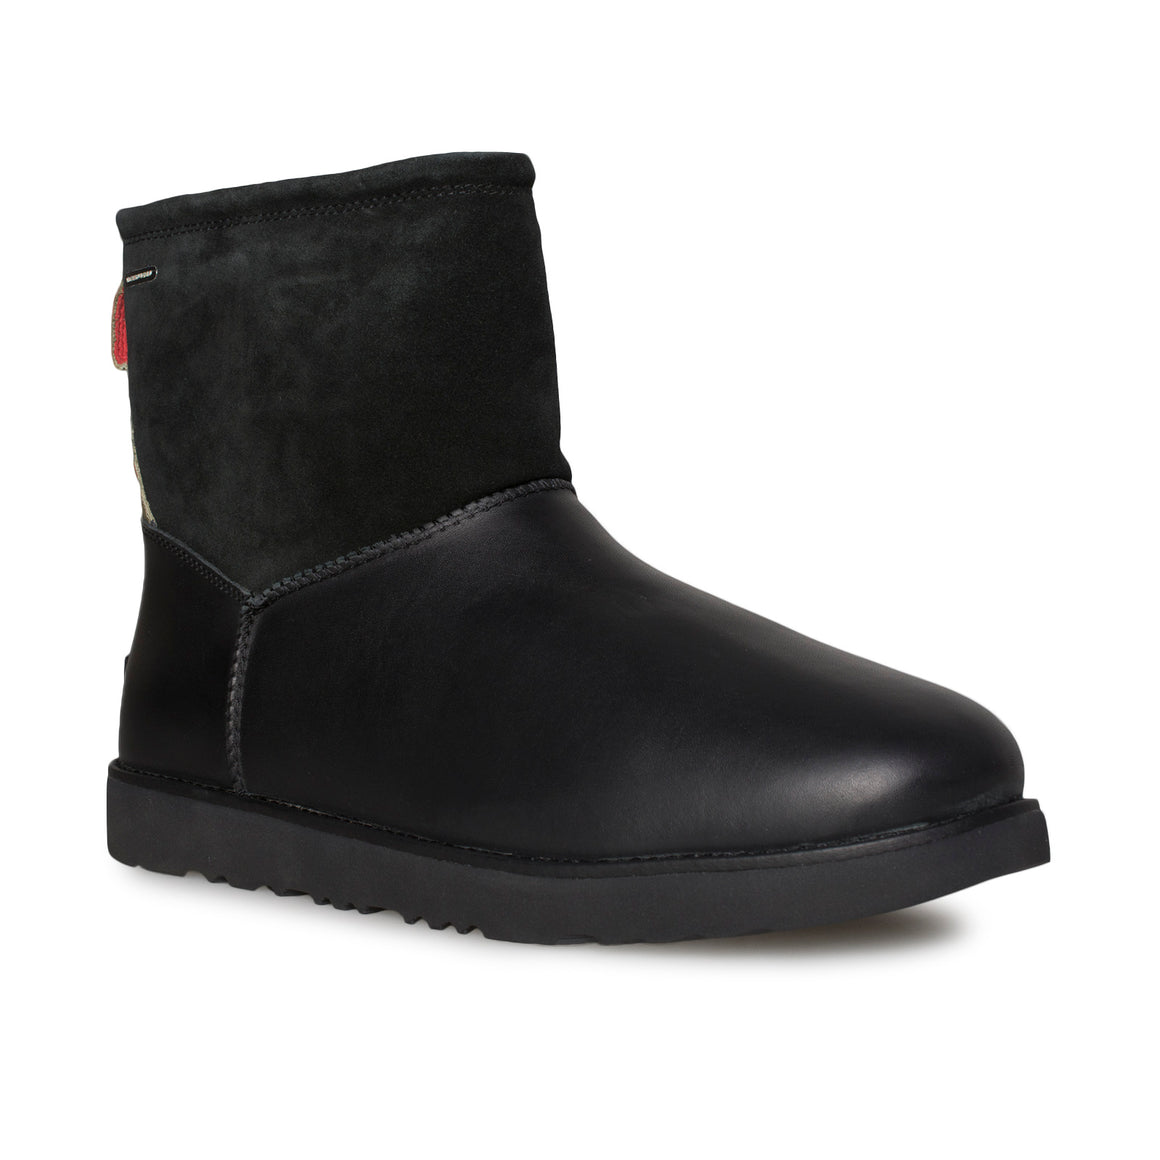 UGG Classic Toggle Waterproof Black Boots - Men's